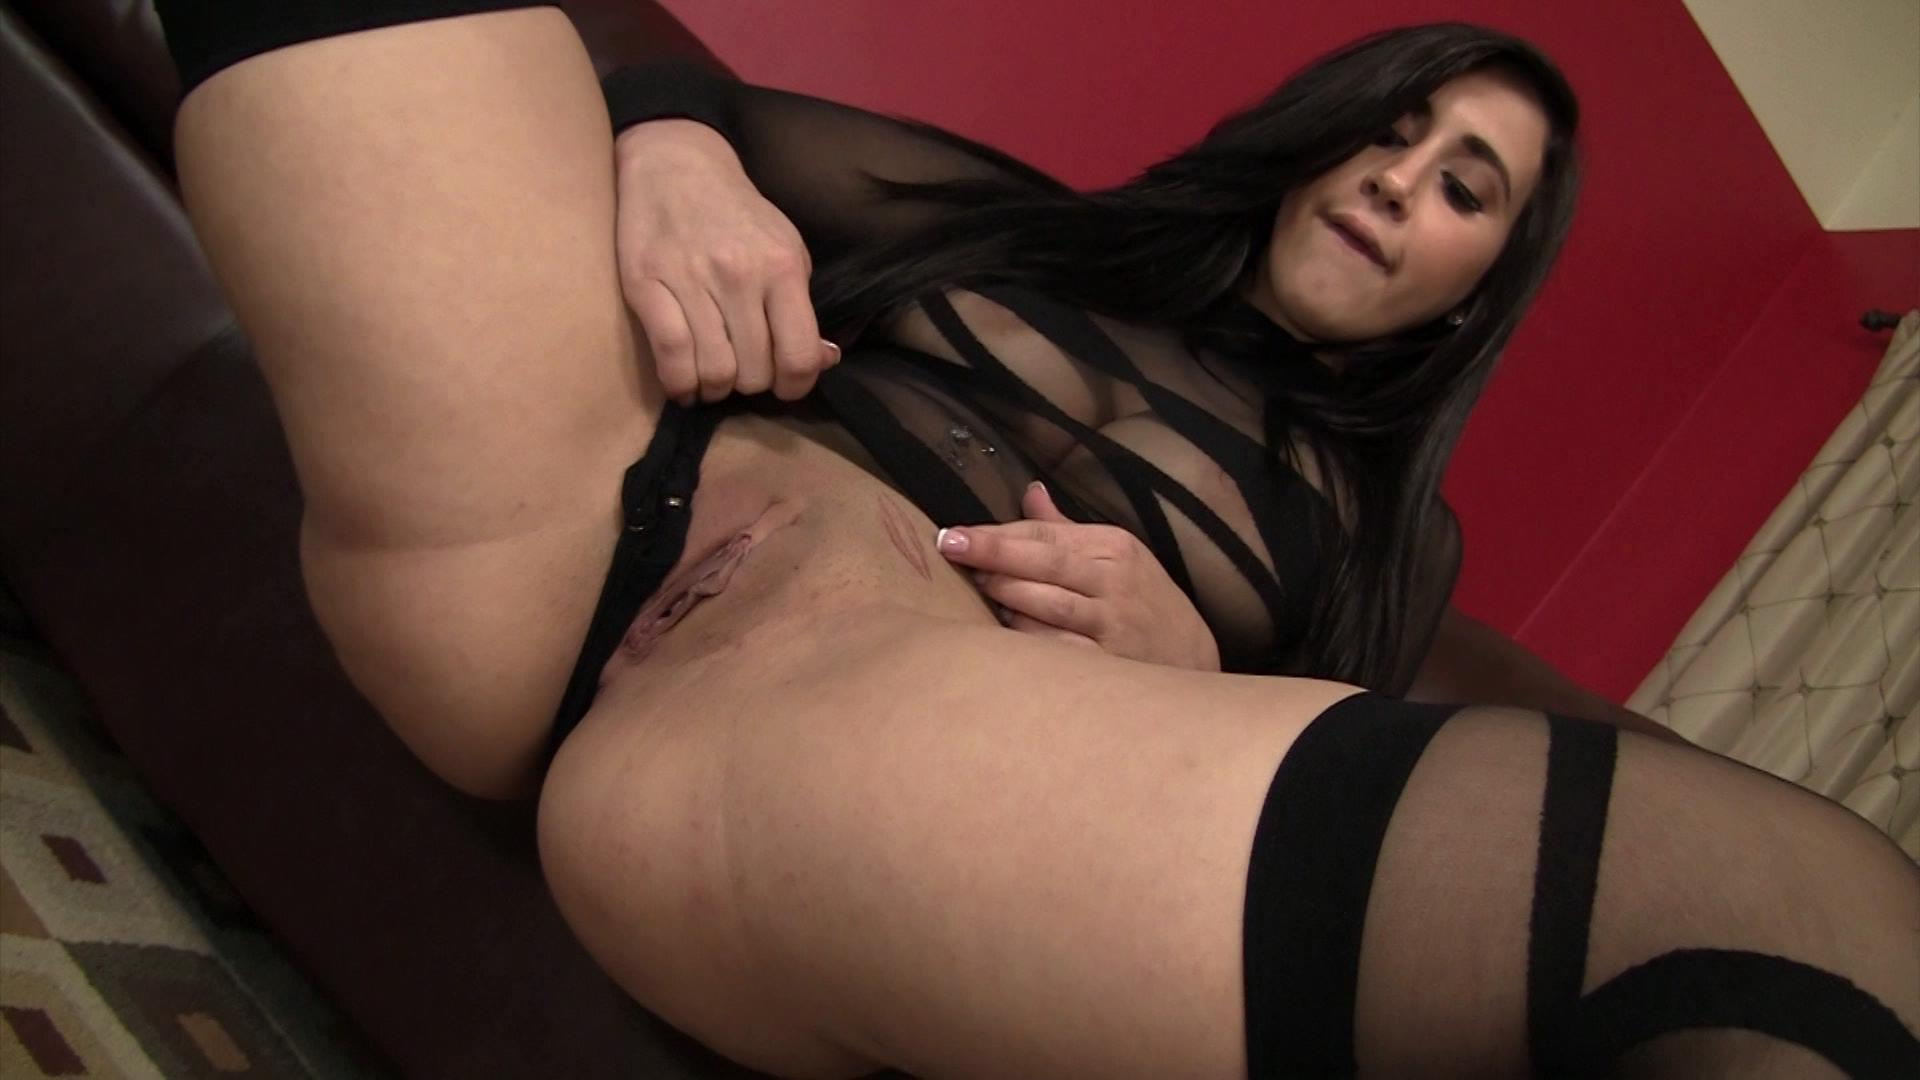 Latinas Love Caliente Creampies 6 / Esperanza never expected her worst nightmare the evil Chupacabra to ravage her tight pussy and blow his wicked load inside her!